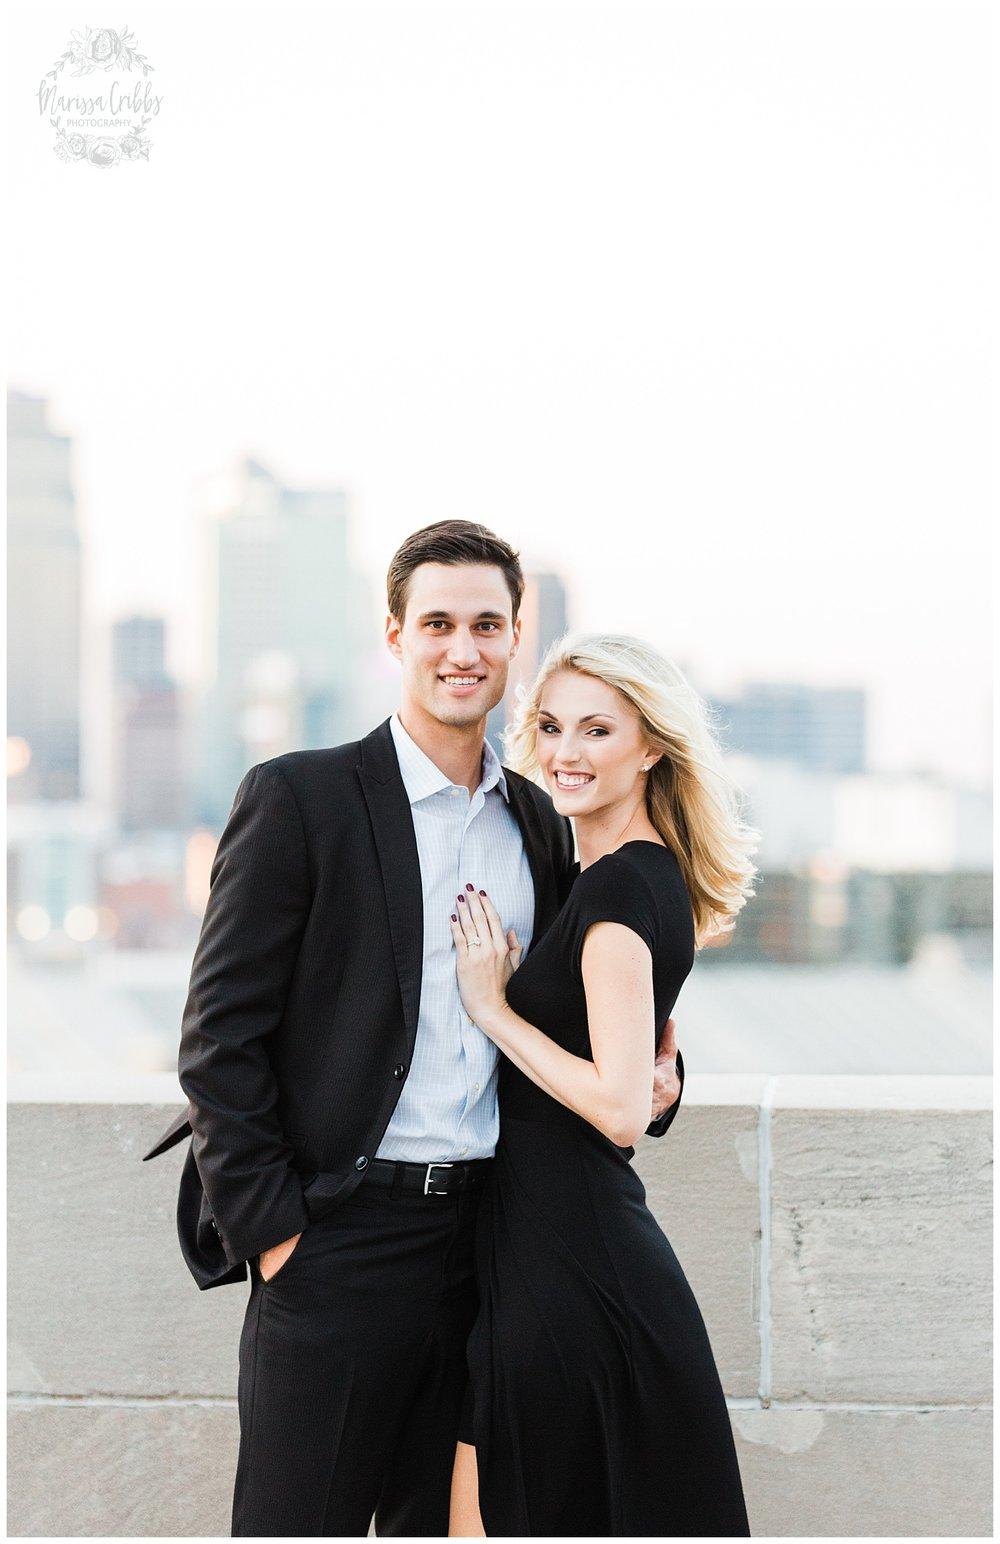 CLOE & GABE LIBERTY MEMORIAL ENGAGEMENT | MARISSA CRIBBS PHOTOGRAPHY | LOOSE PARK ENGAGEMENT_3483.jpg